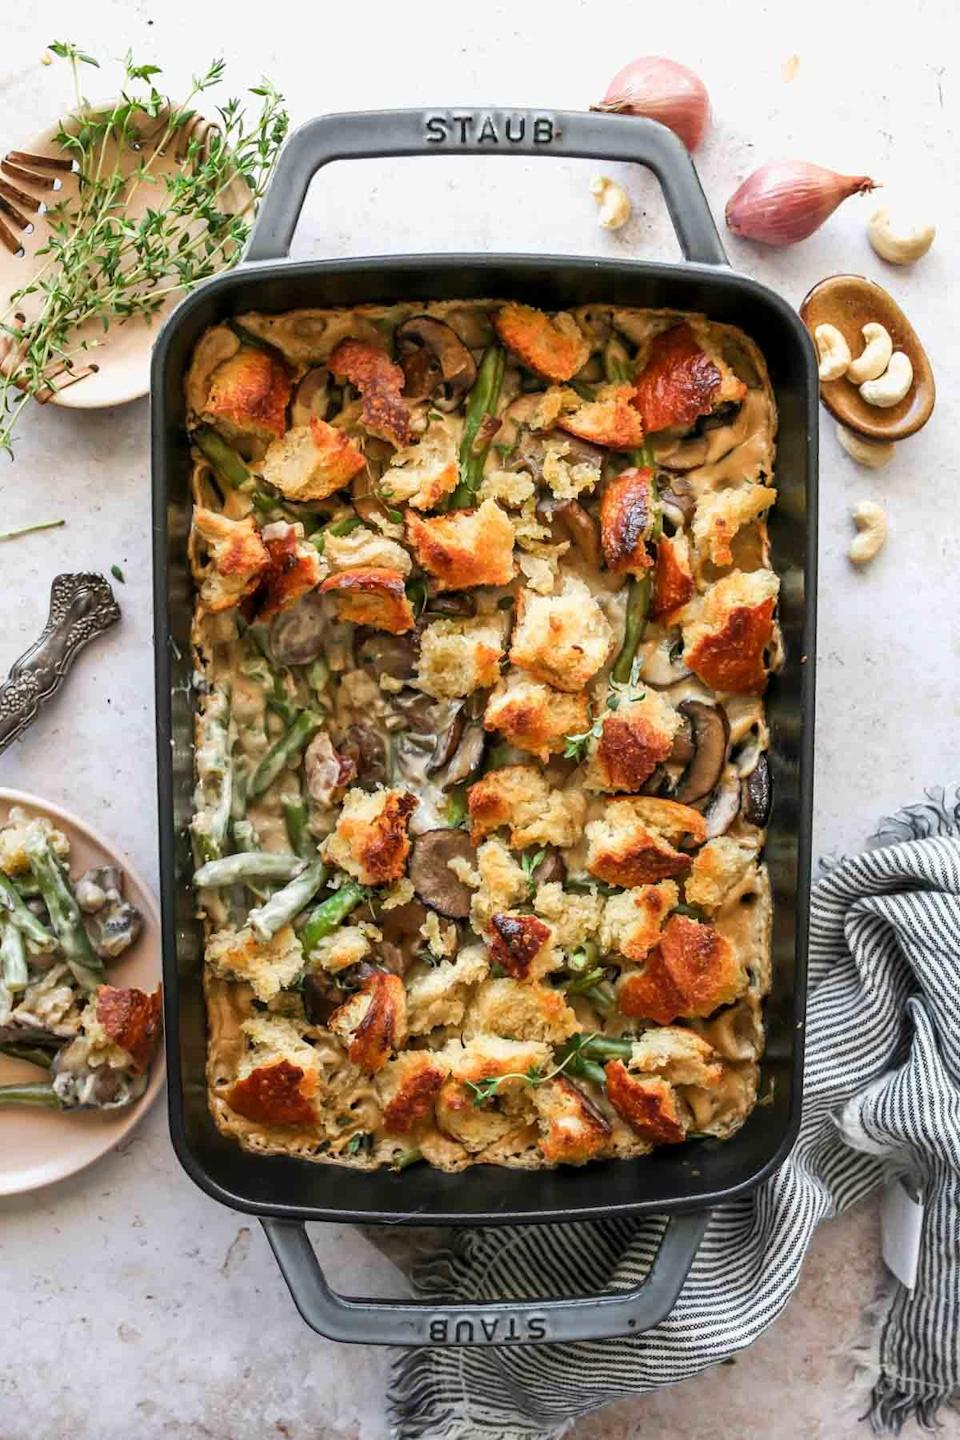 """<p>Try a new kind of green bean casserole when you swap out regular milk for cashew cream. It'll give you new flavors you've never experienced before, while still keeping the traditionally tasty green bean tone. Enjoy!</p> <p><strong>Get the recipe</strong>: <a href=""""https://dishingouthealth.com/green-bean-casserole-with-cashew-cream/?utm_source=feedly&utm_medium=rss&utm_campaign=green-bean-casserole-with-cashew-cream"""" class=""""link rapid-noclick-resp"""" rel=""""nofollow noopener"""" target=""""_blank"""" data-ylk=""""slk:dairy-free green bean casserole"""">dairy-free green bean casserole</a></p>"""